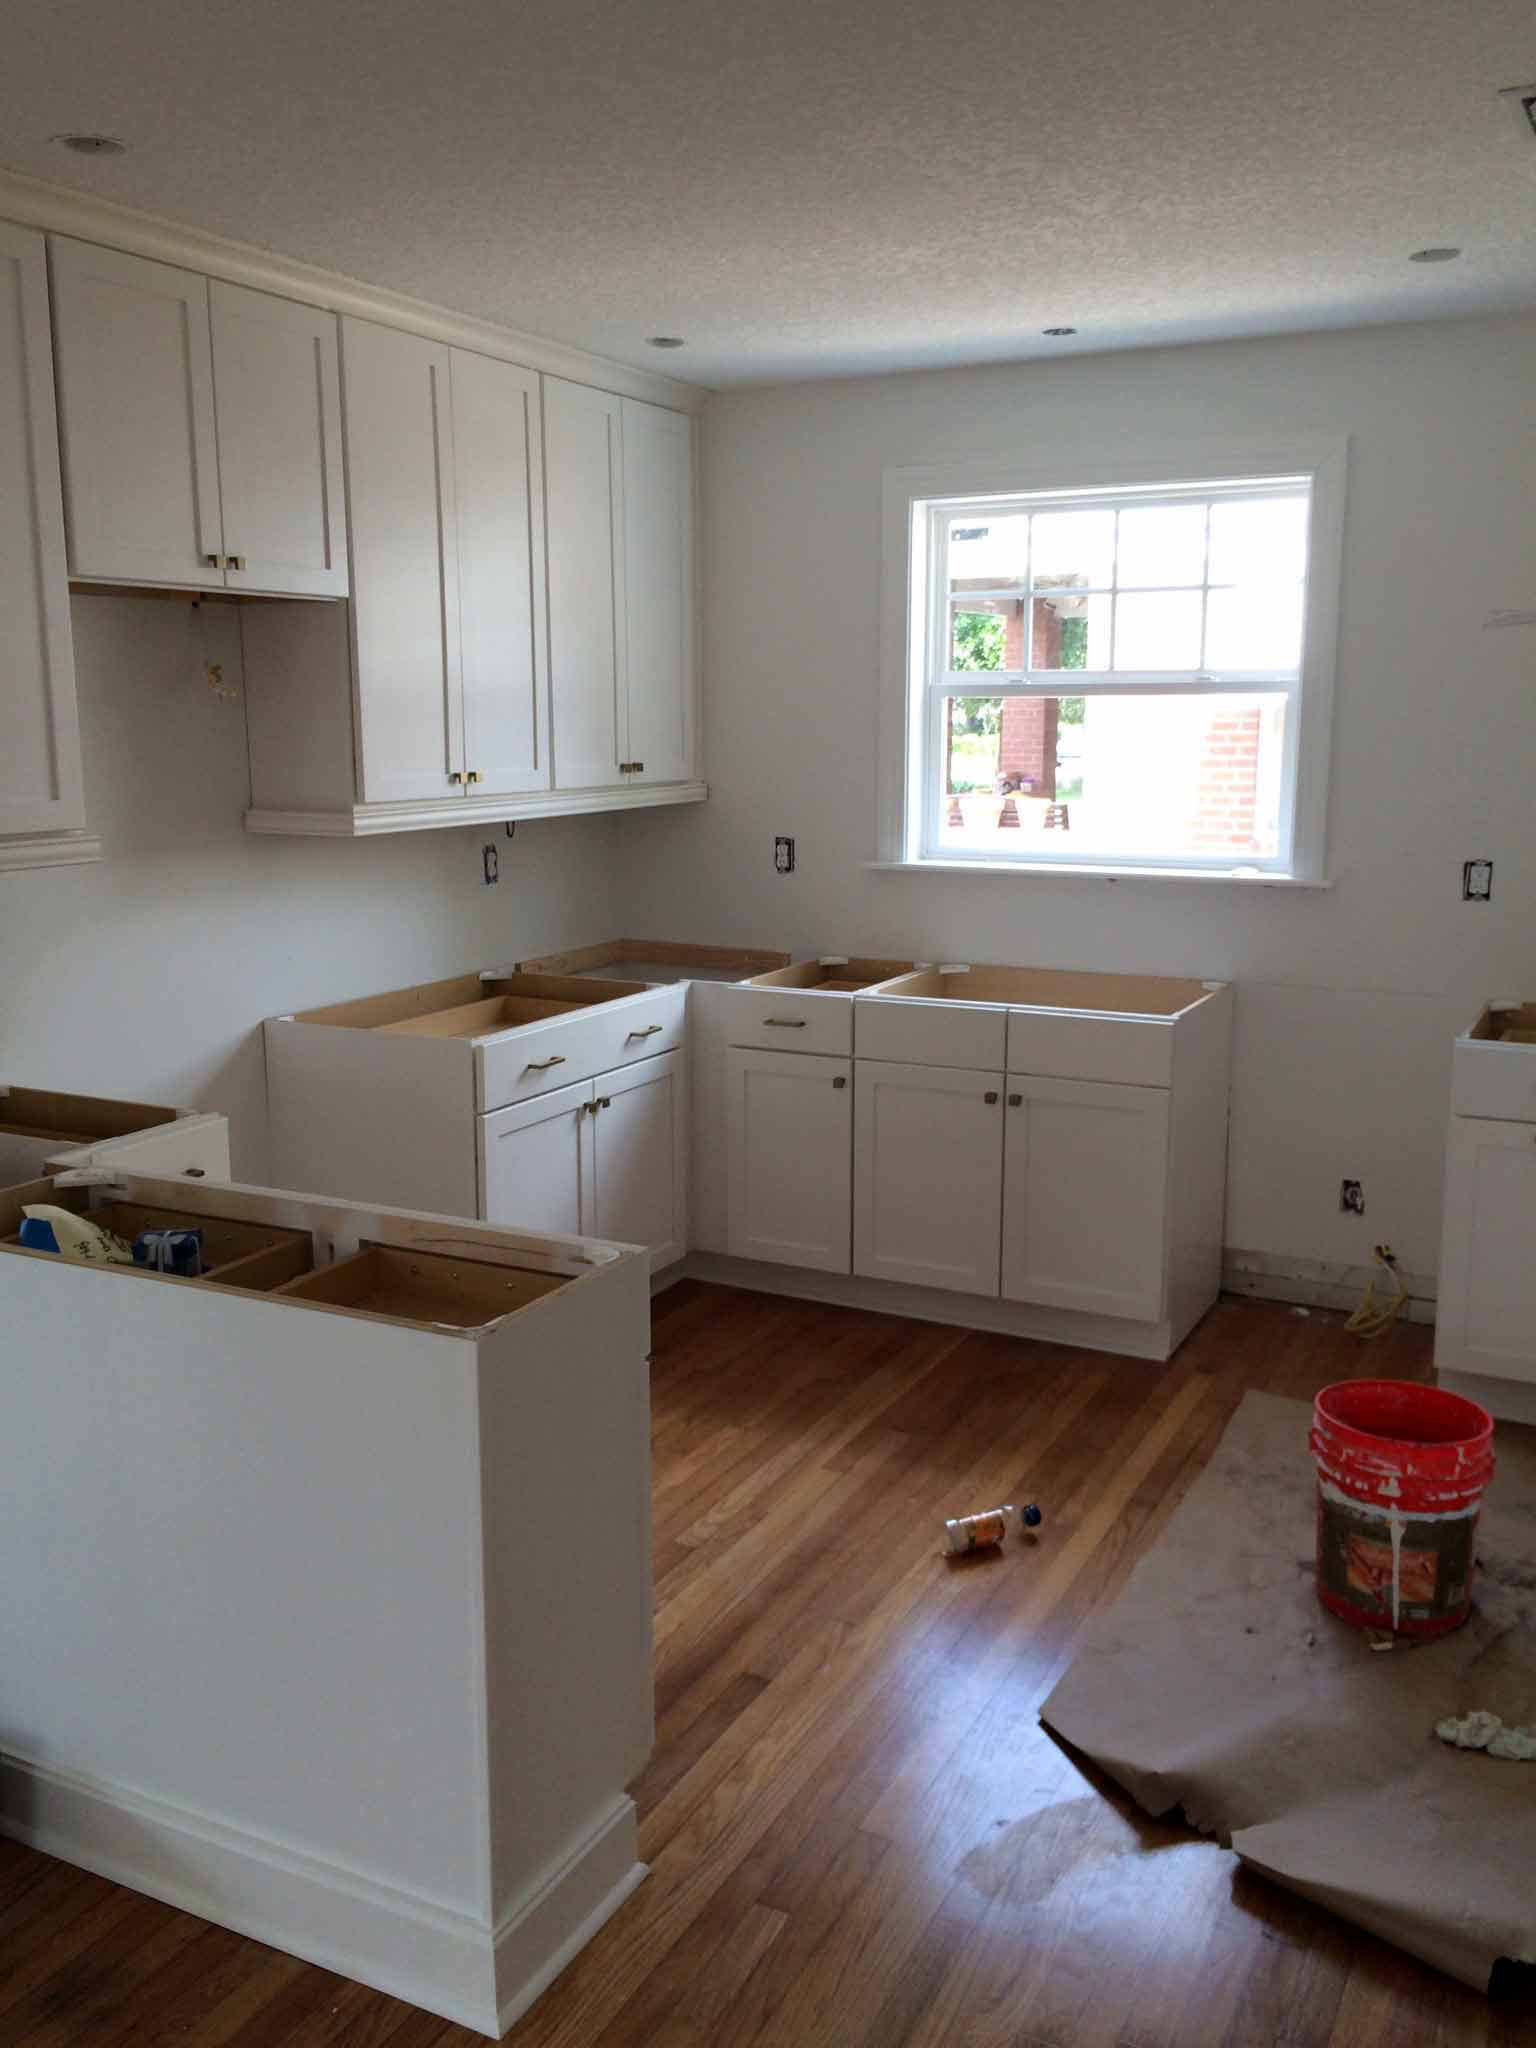 Kitchen Cabinetry Being Installed - That Homebird Life